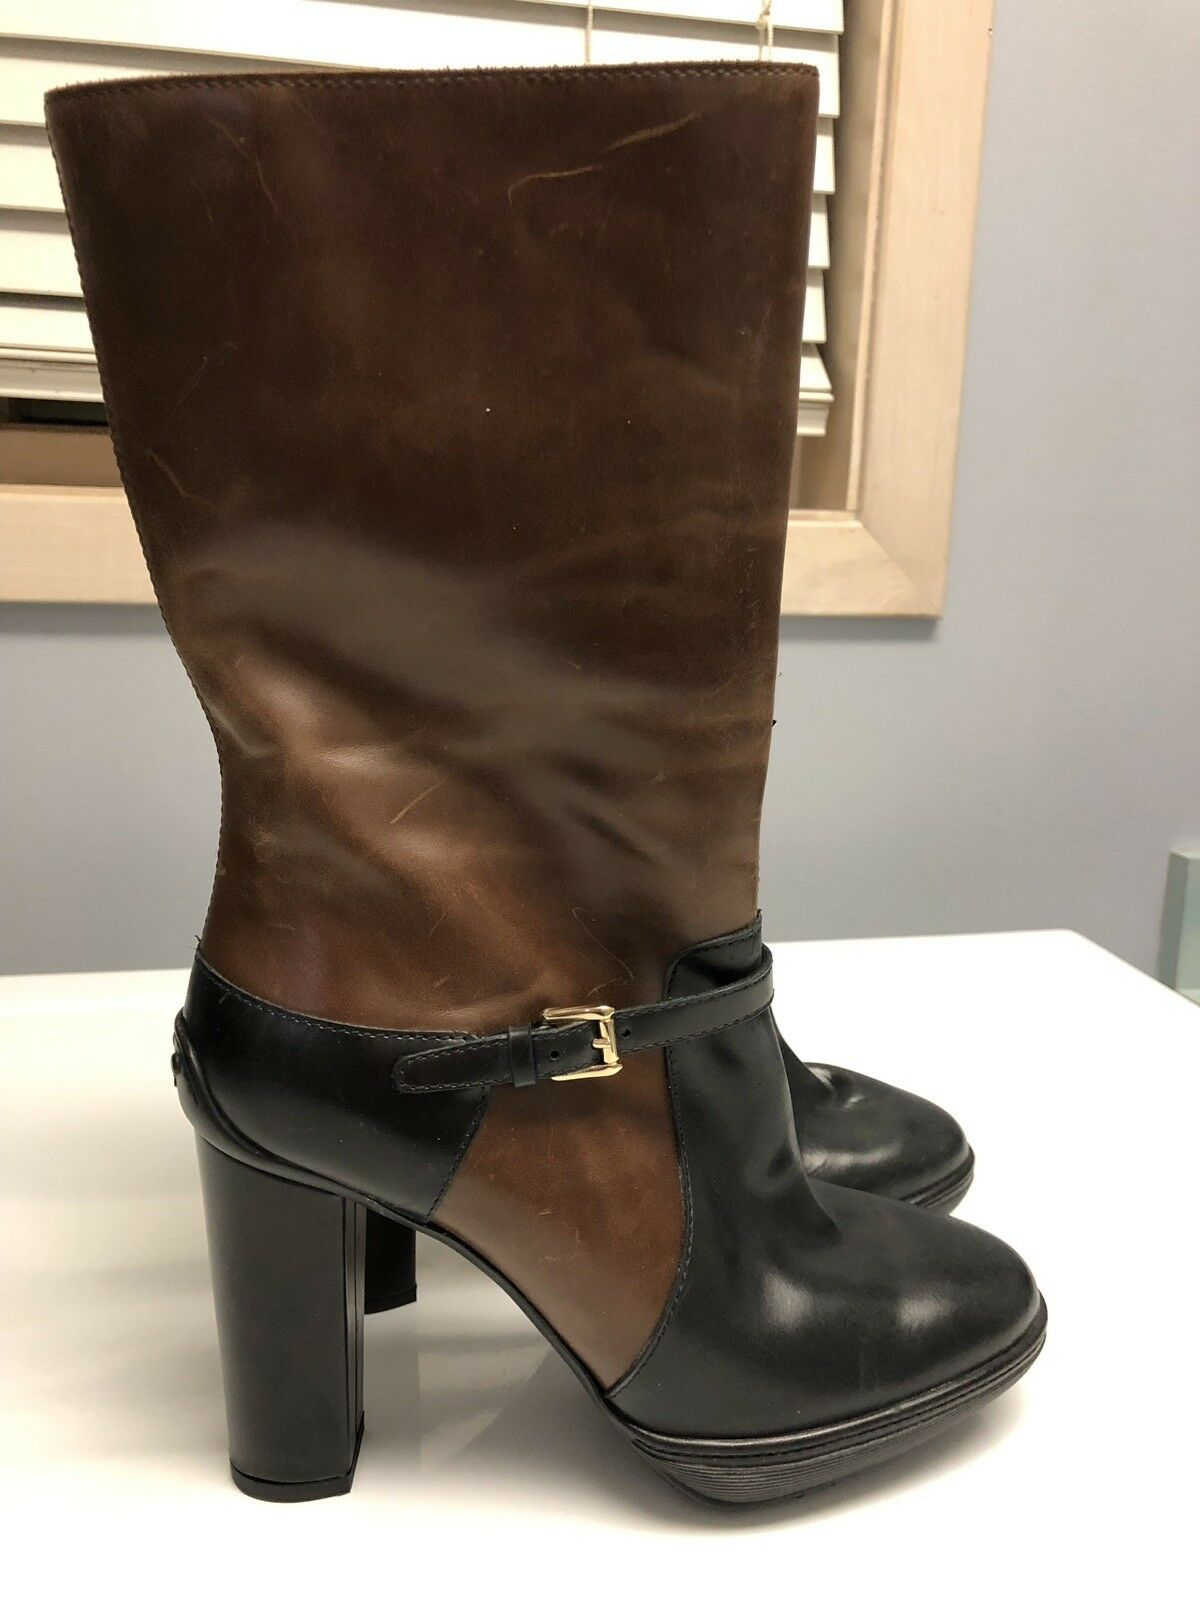 1095 Tod's Mid Calf Platform Boots Boots Boots Brown black Leather Women Sz 36.5 New 898ac4